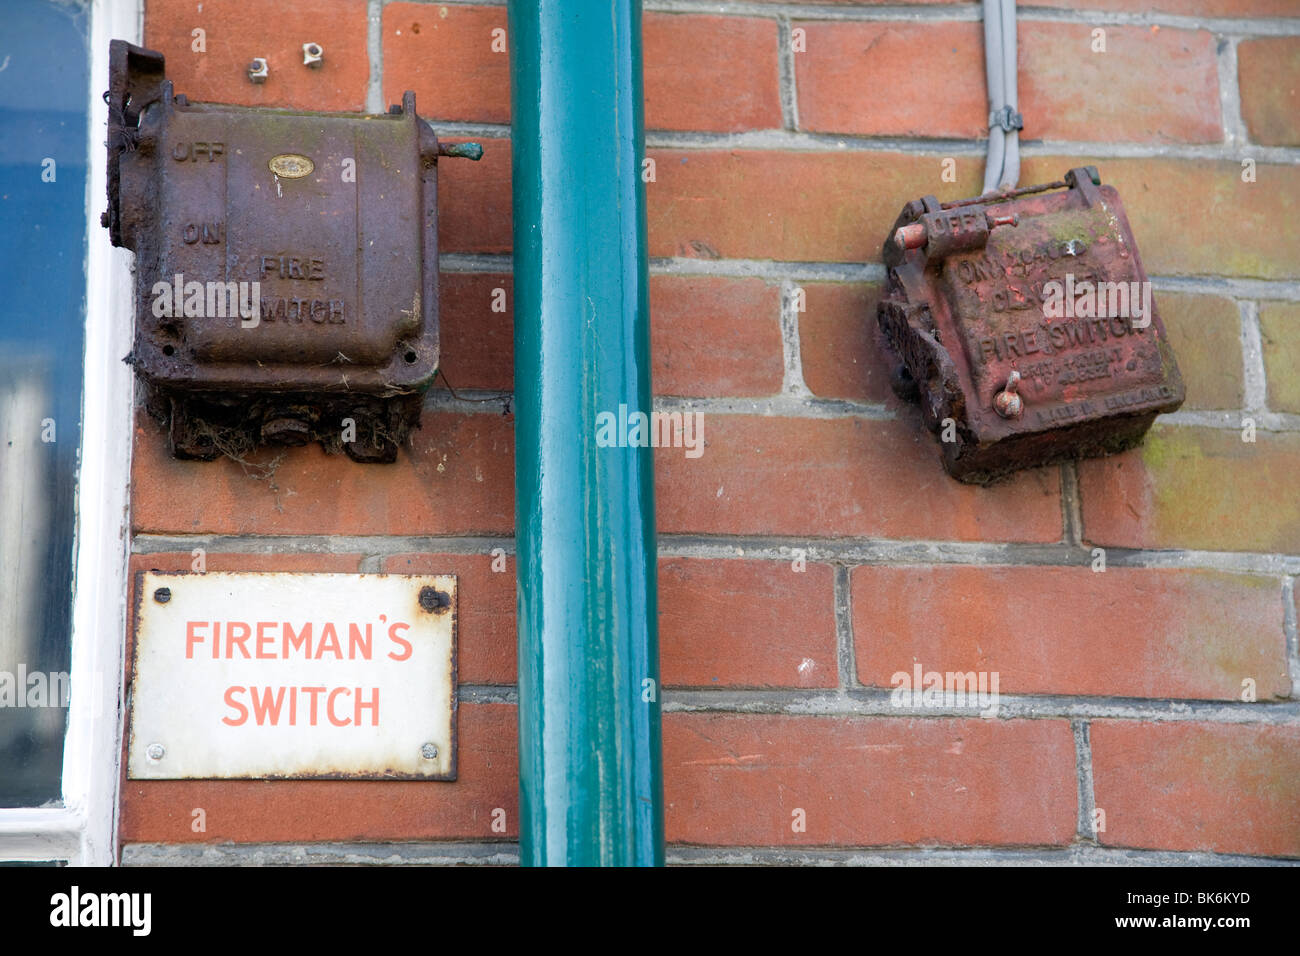 Old Fireman's switch mechanisms, Walberswick, Suffolk - Stock Image